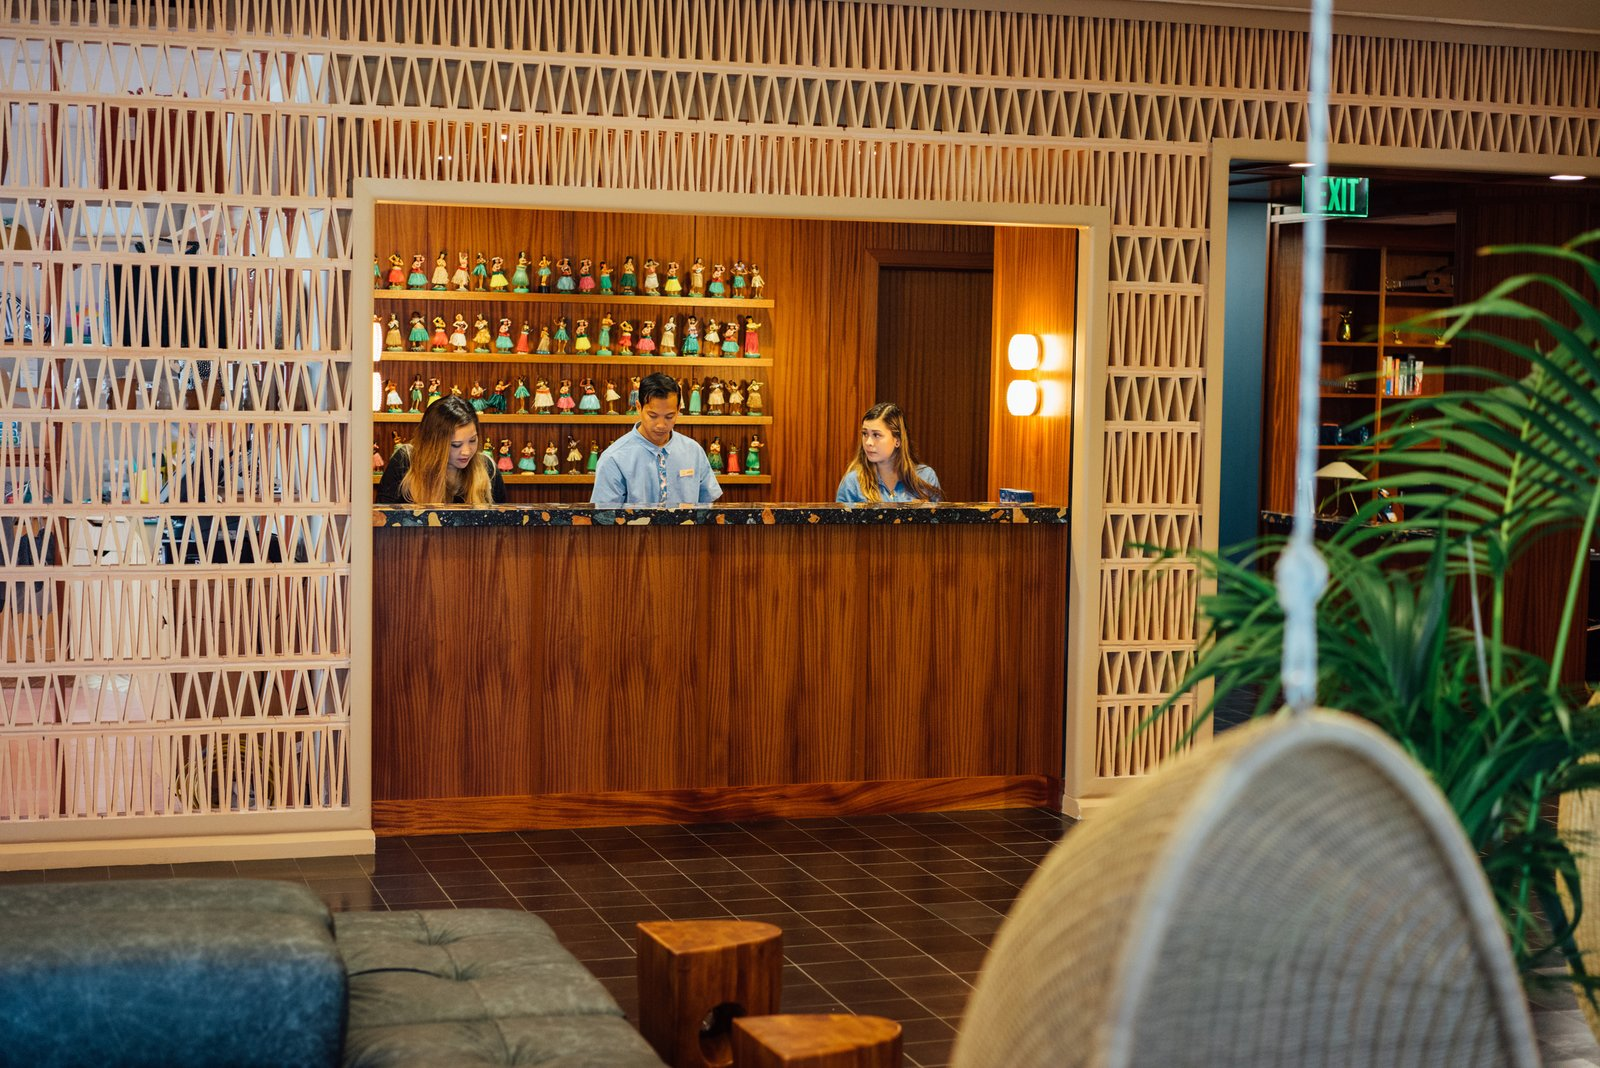 With its 15 floors, The Laylow stands above Kuhio Avenue in Honolulu's Waikiki neighborhood on the South Shore of Oahu. The welcoming, tropical lobby is located on the second floor, providing a place for guests to enter peacefully away from the hustle and bustle of the street.  Photo 3 of 18 in Waikiki's Midcentury Revival Continues to Flourish With a New Jet Set-Inspired Hotel